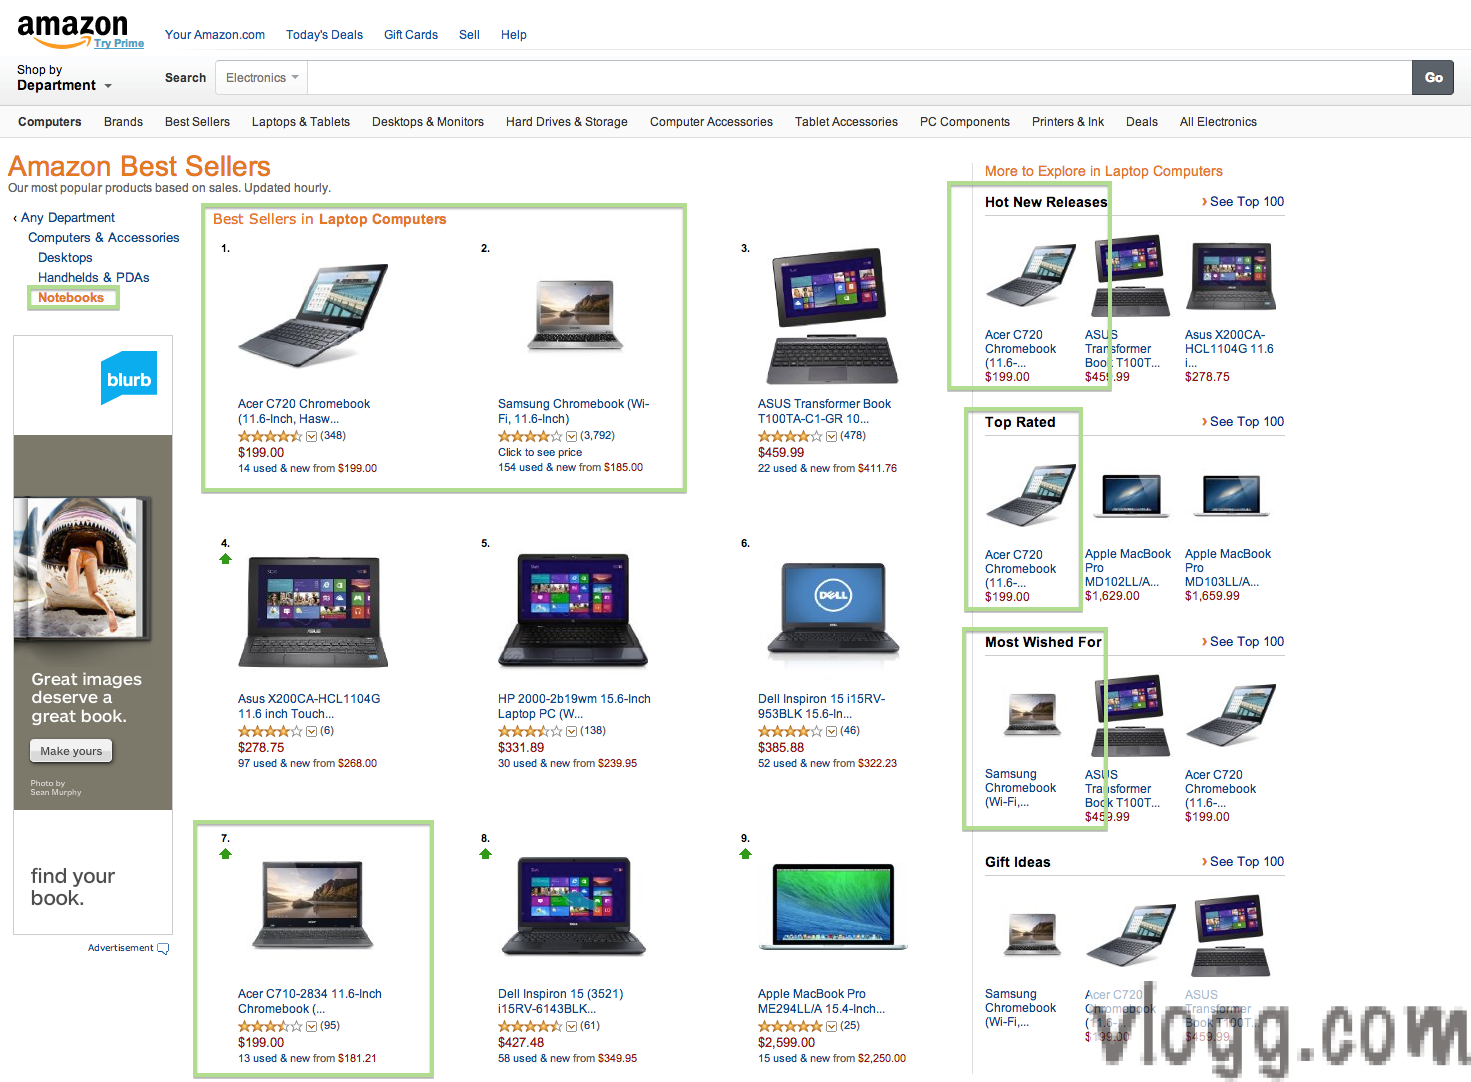 Google Chromebooks Rank #1 in Amazon Best Sellers under Notebooks Category